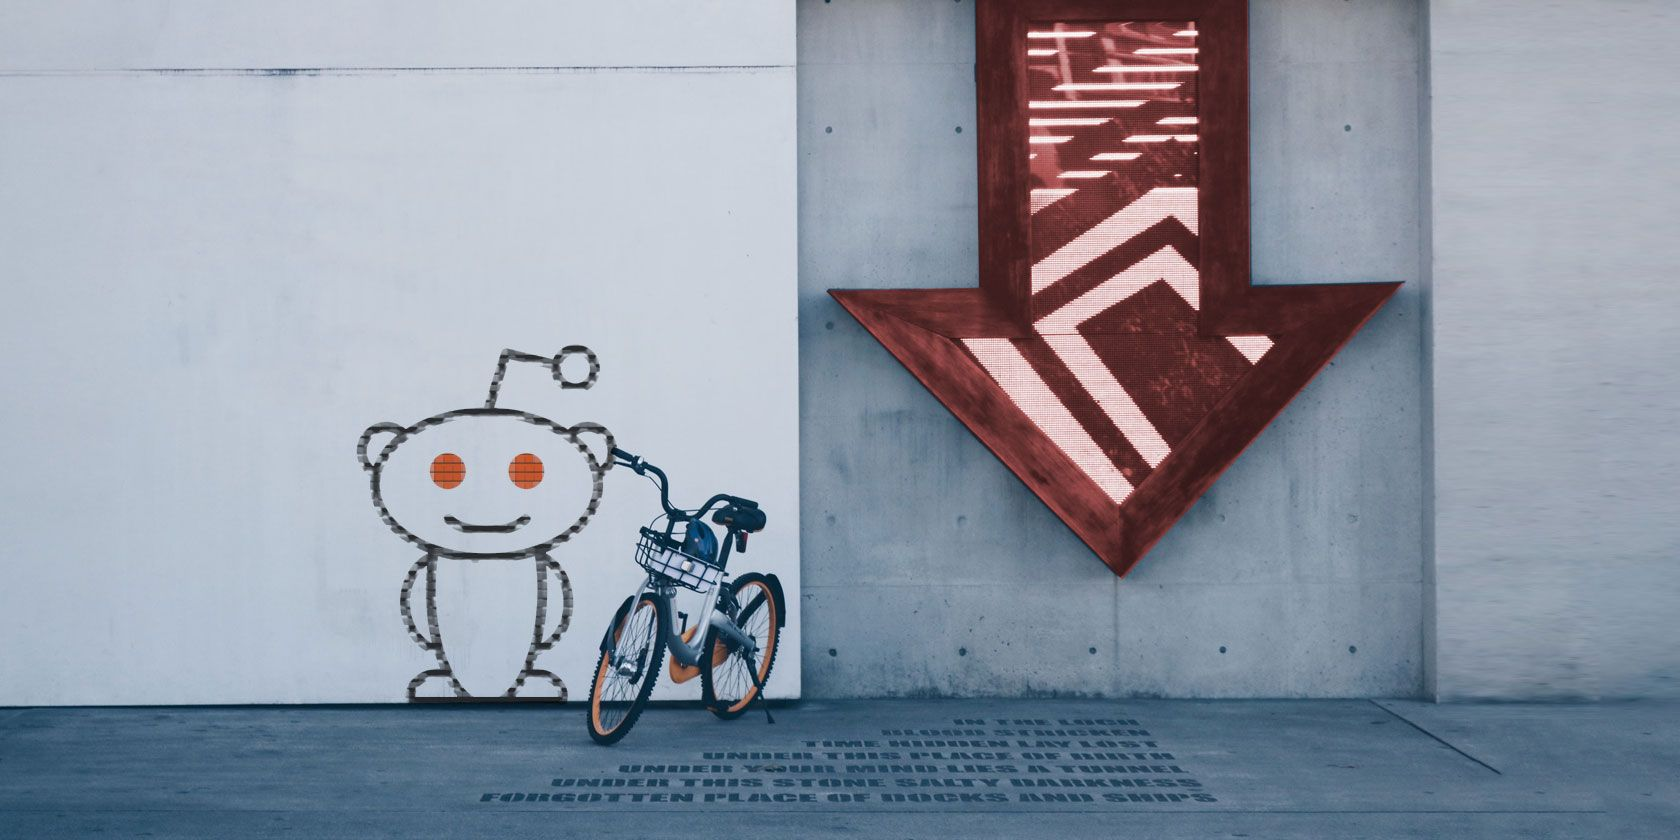 The Most Downvoted Reddit Comments of All Time | Social Media